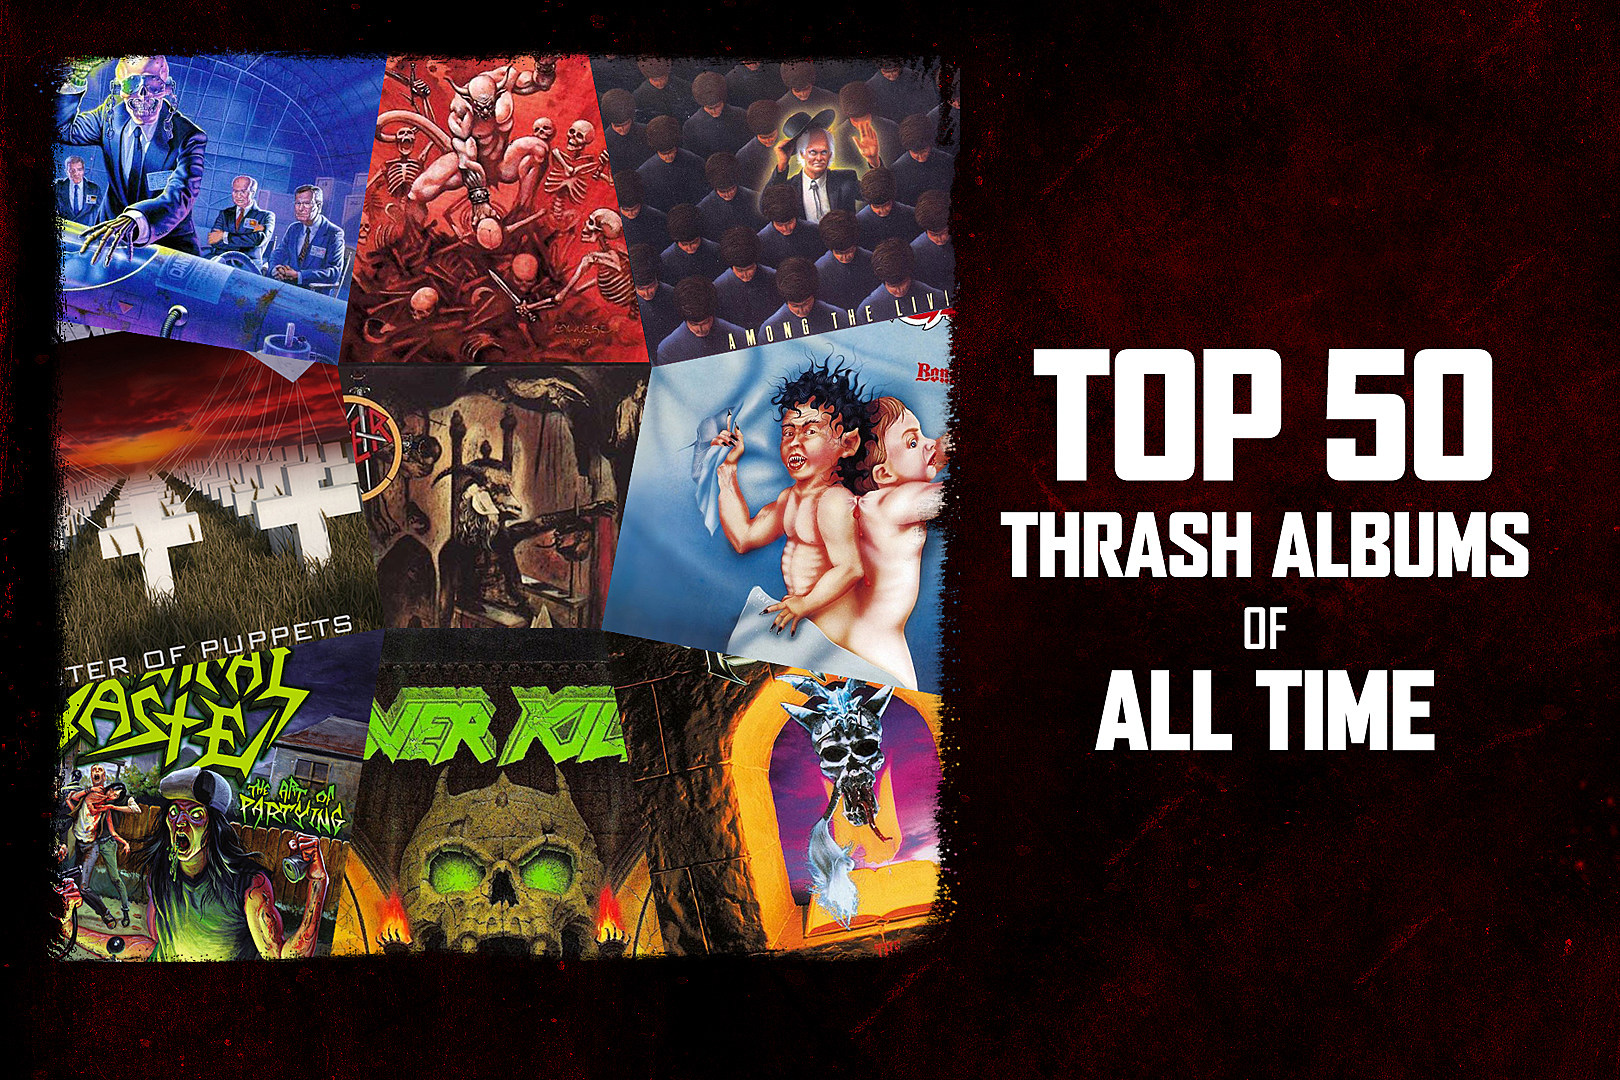 Top 50 Thrash Metal Albums of All Time